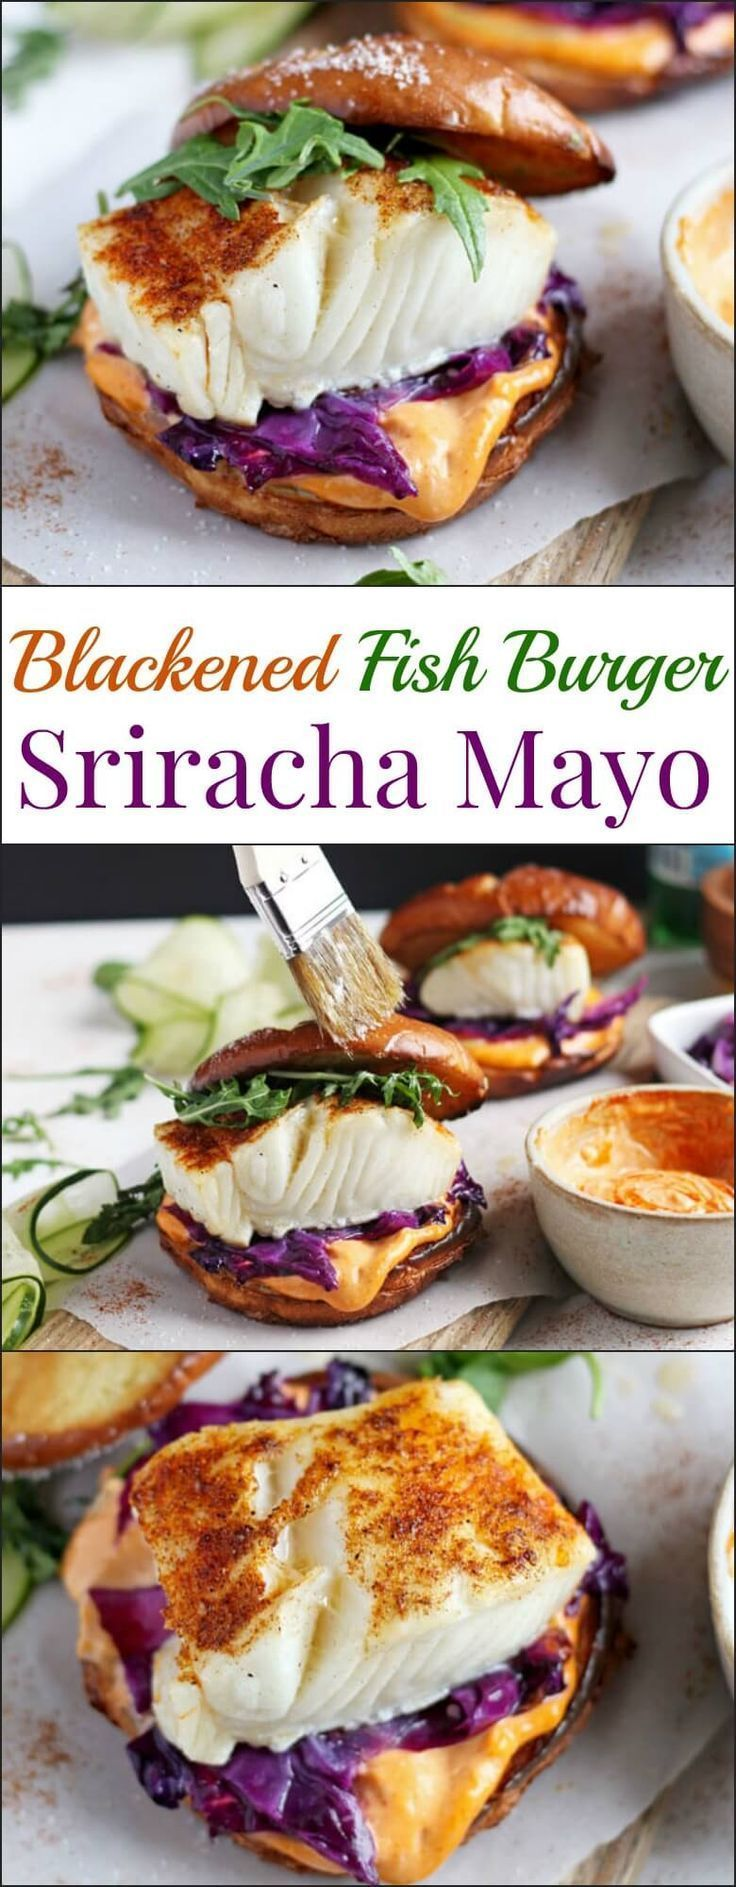 blackened fish burger + sriracha mayo - Oh Sweet Basil